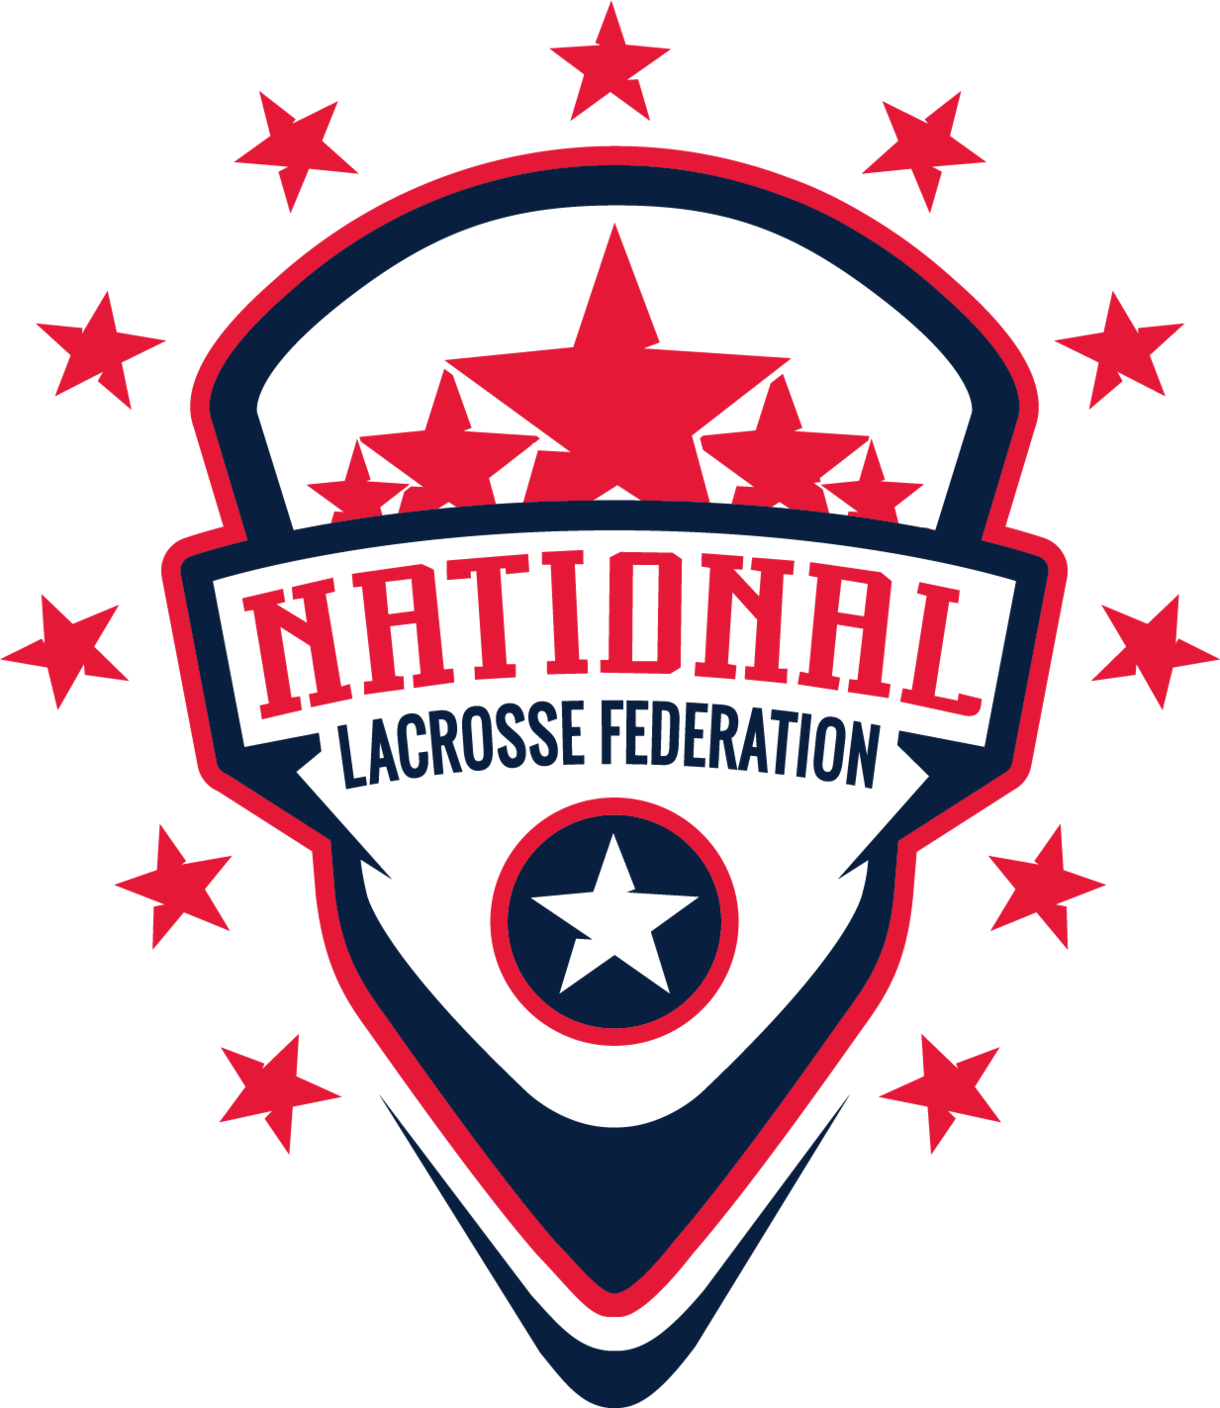 National Lacrosse Federation